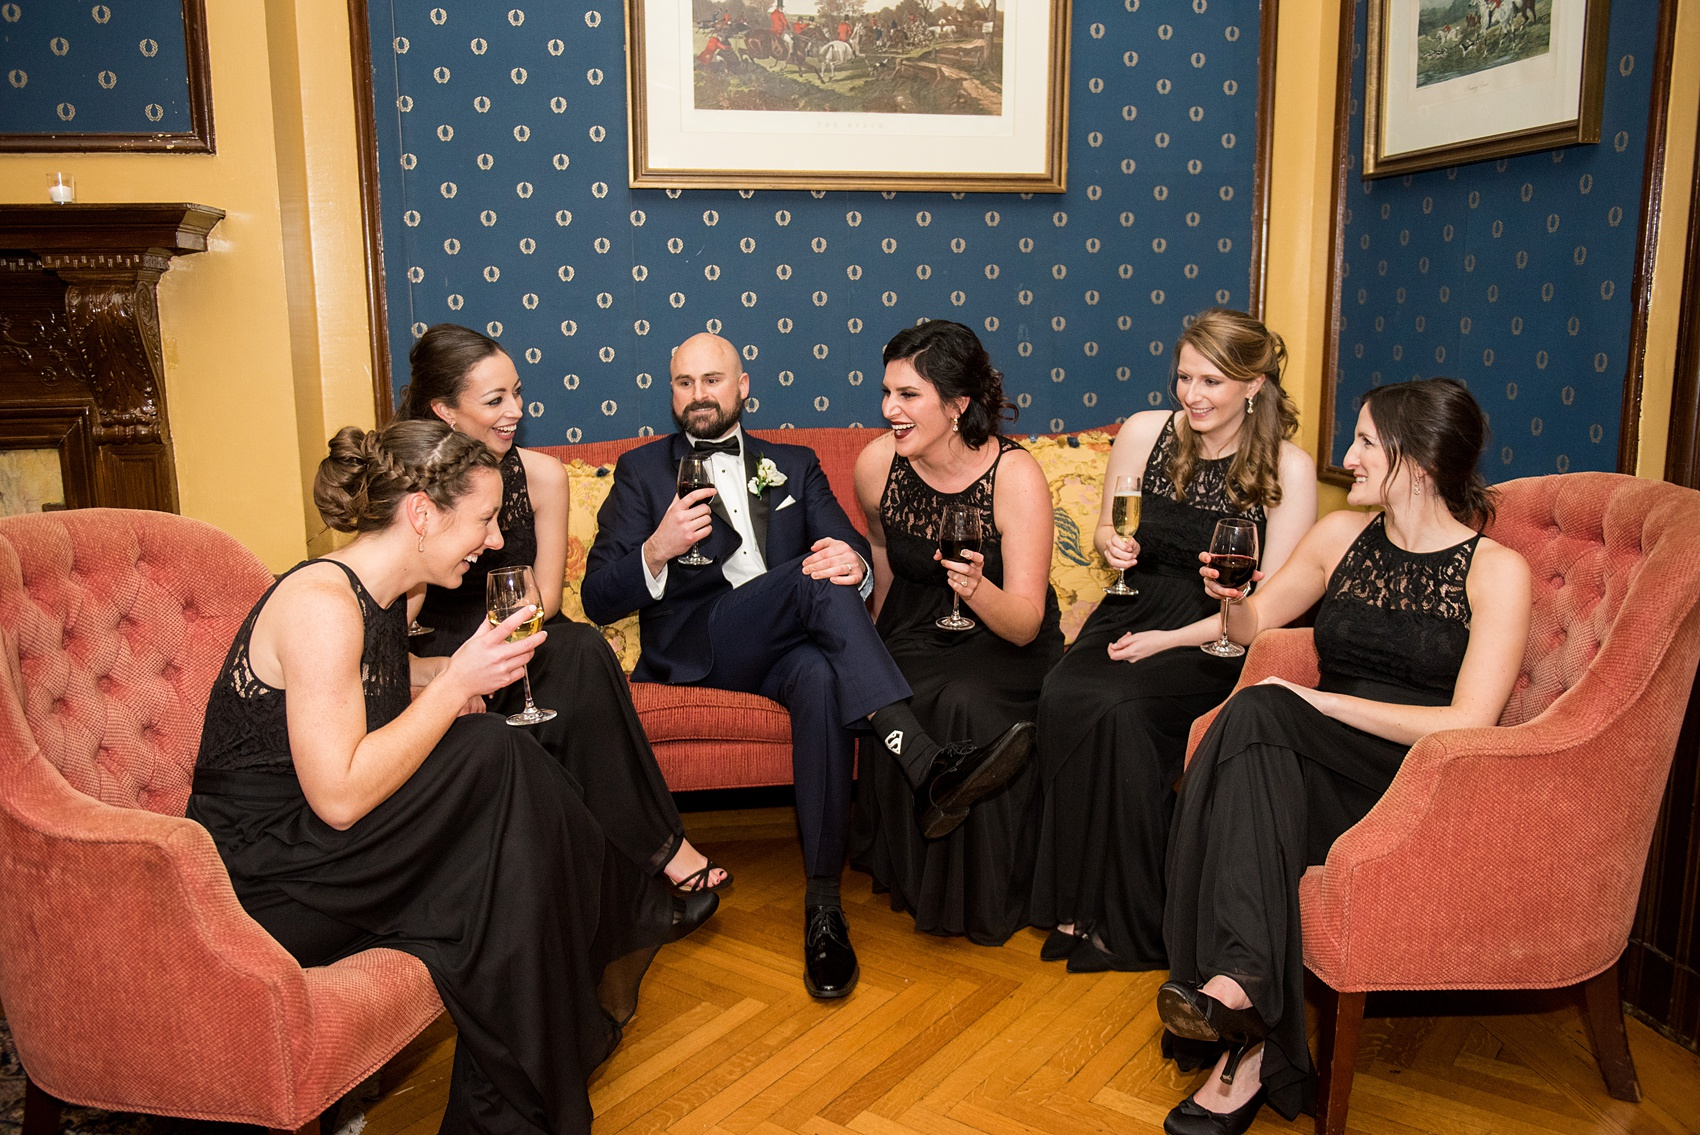 Wedding photos at Sleepy Hollow Country Club for a winter reception in January by Mikkel Paige Photography. The groom shared drinks with the bridal party during this NY winter wedding.